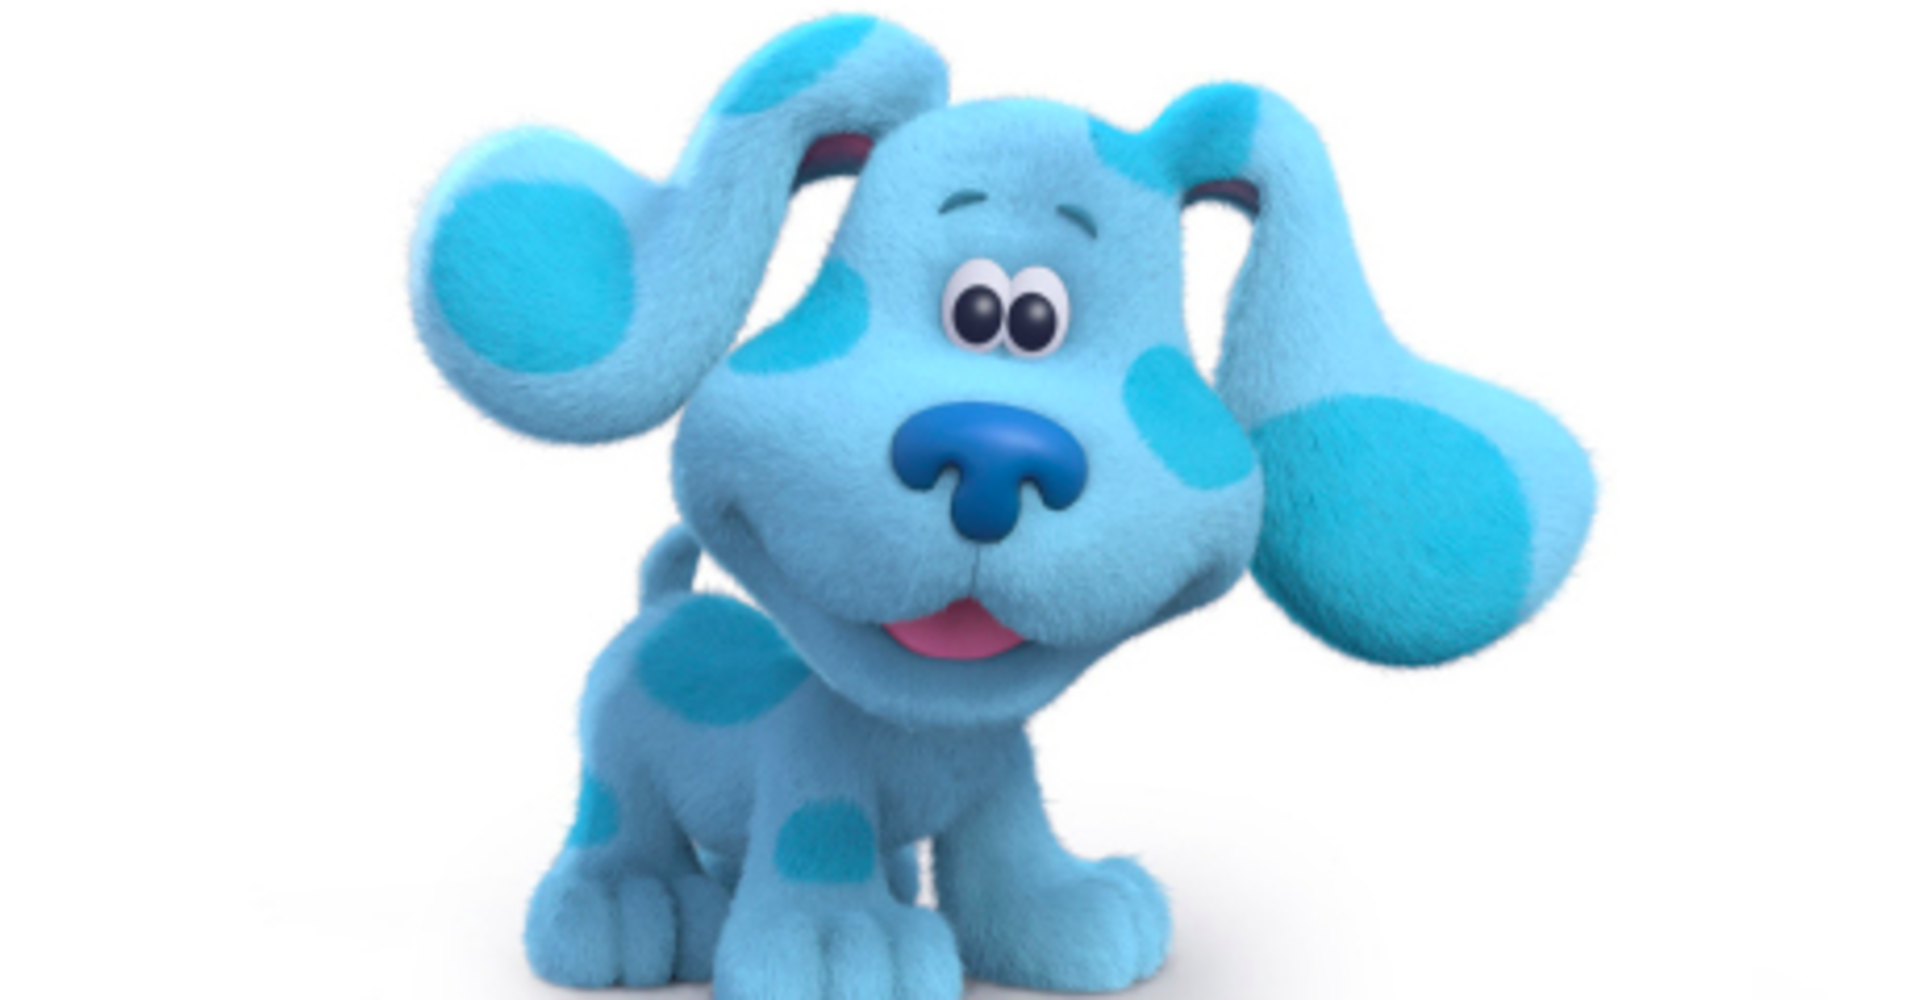 'Blue's Clues' Is Making A Comeback With New Episodes